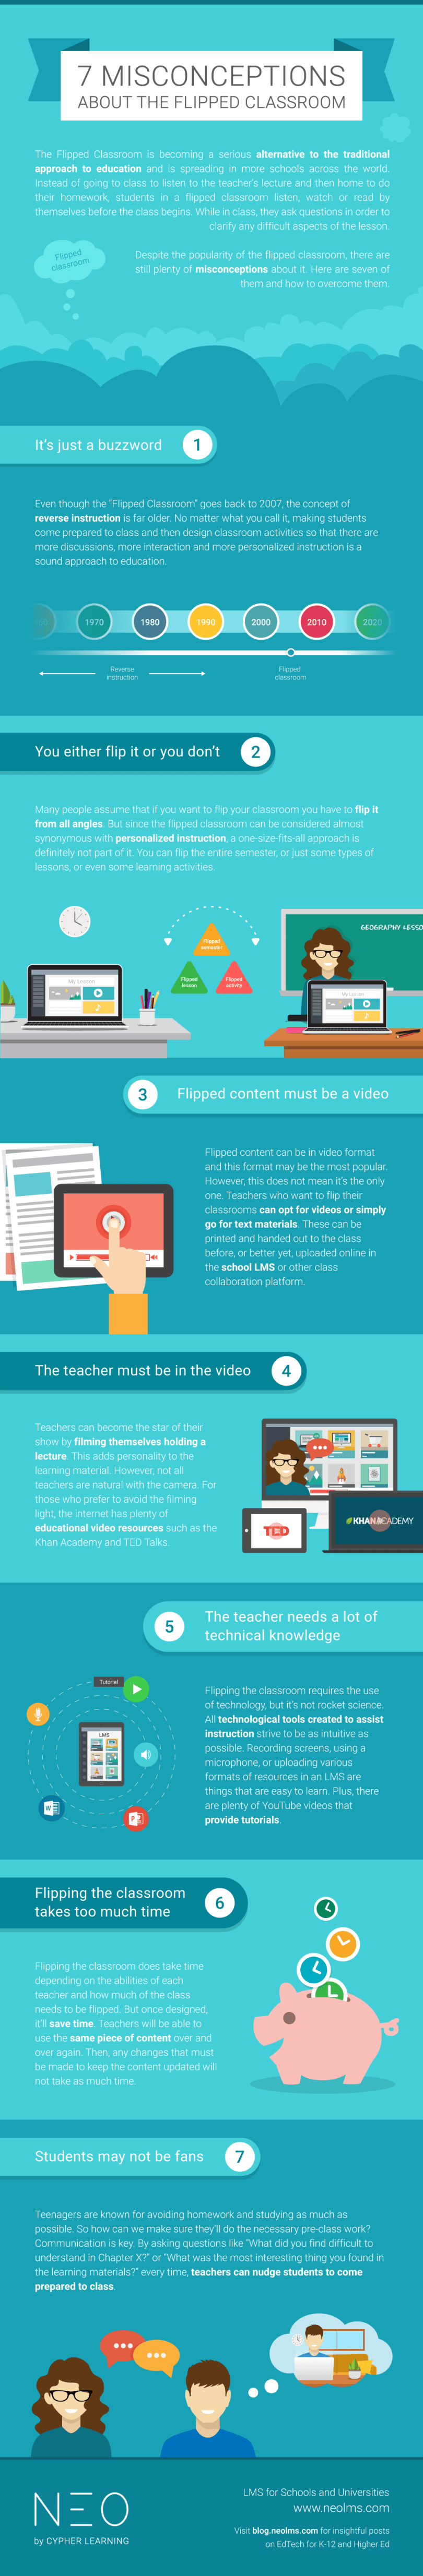 Misconceptions about the flipped classroom Infographic